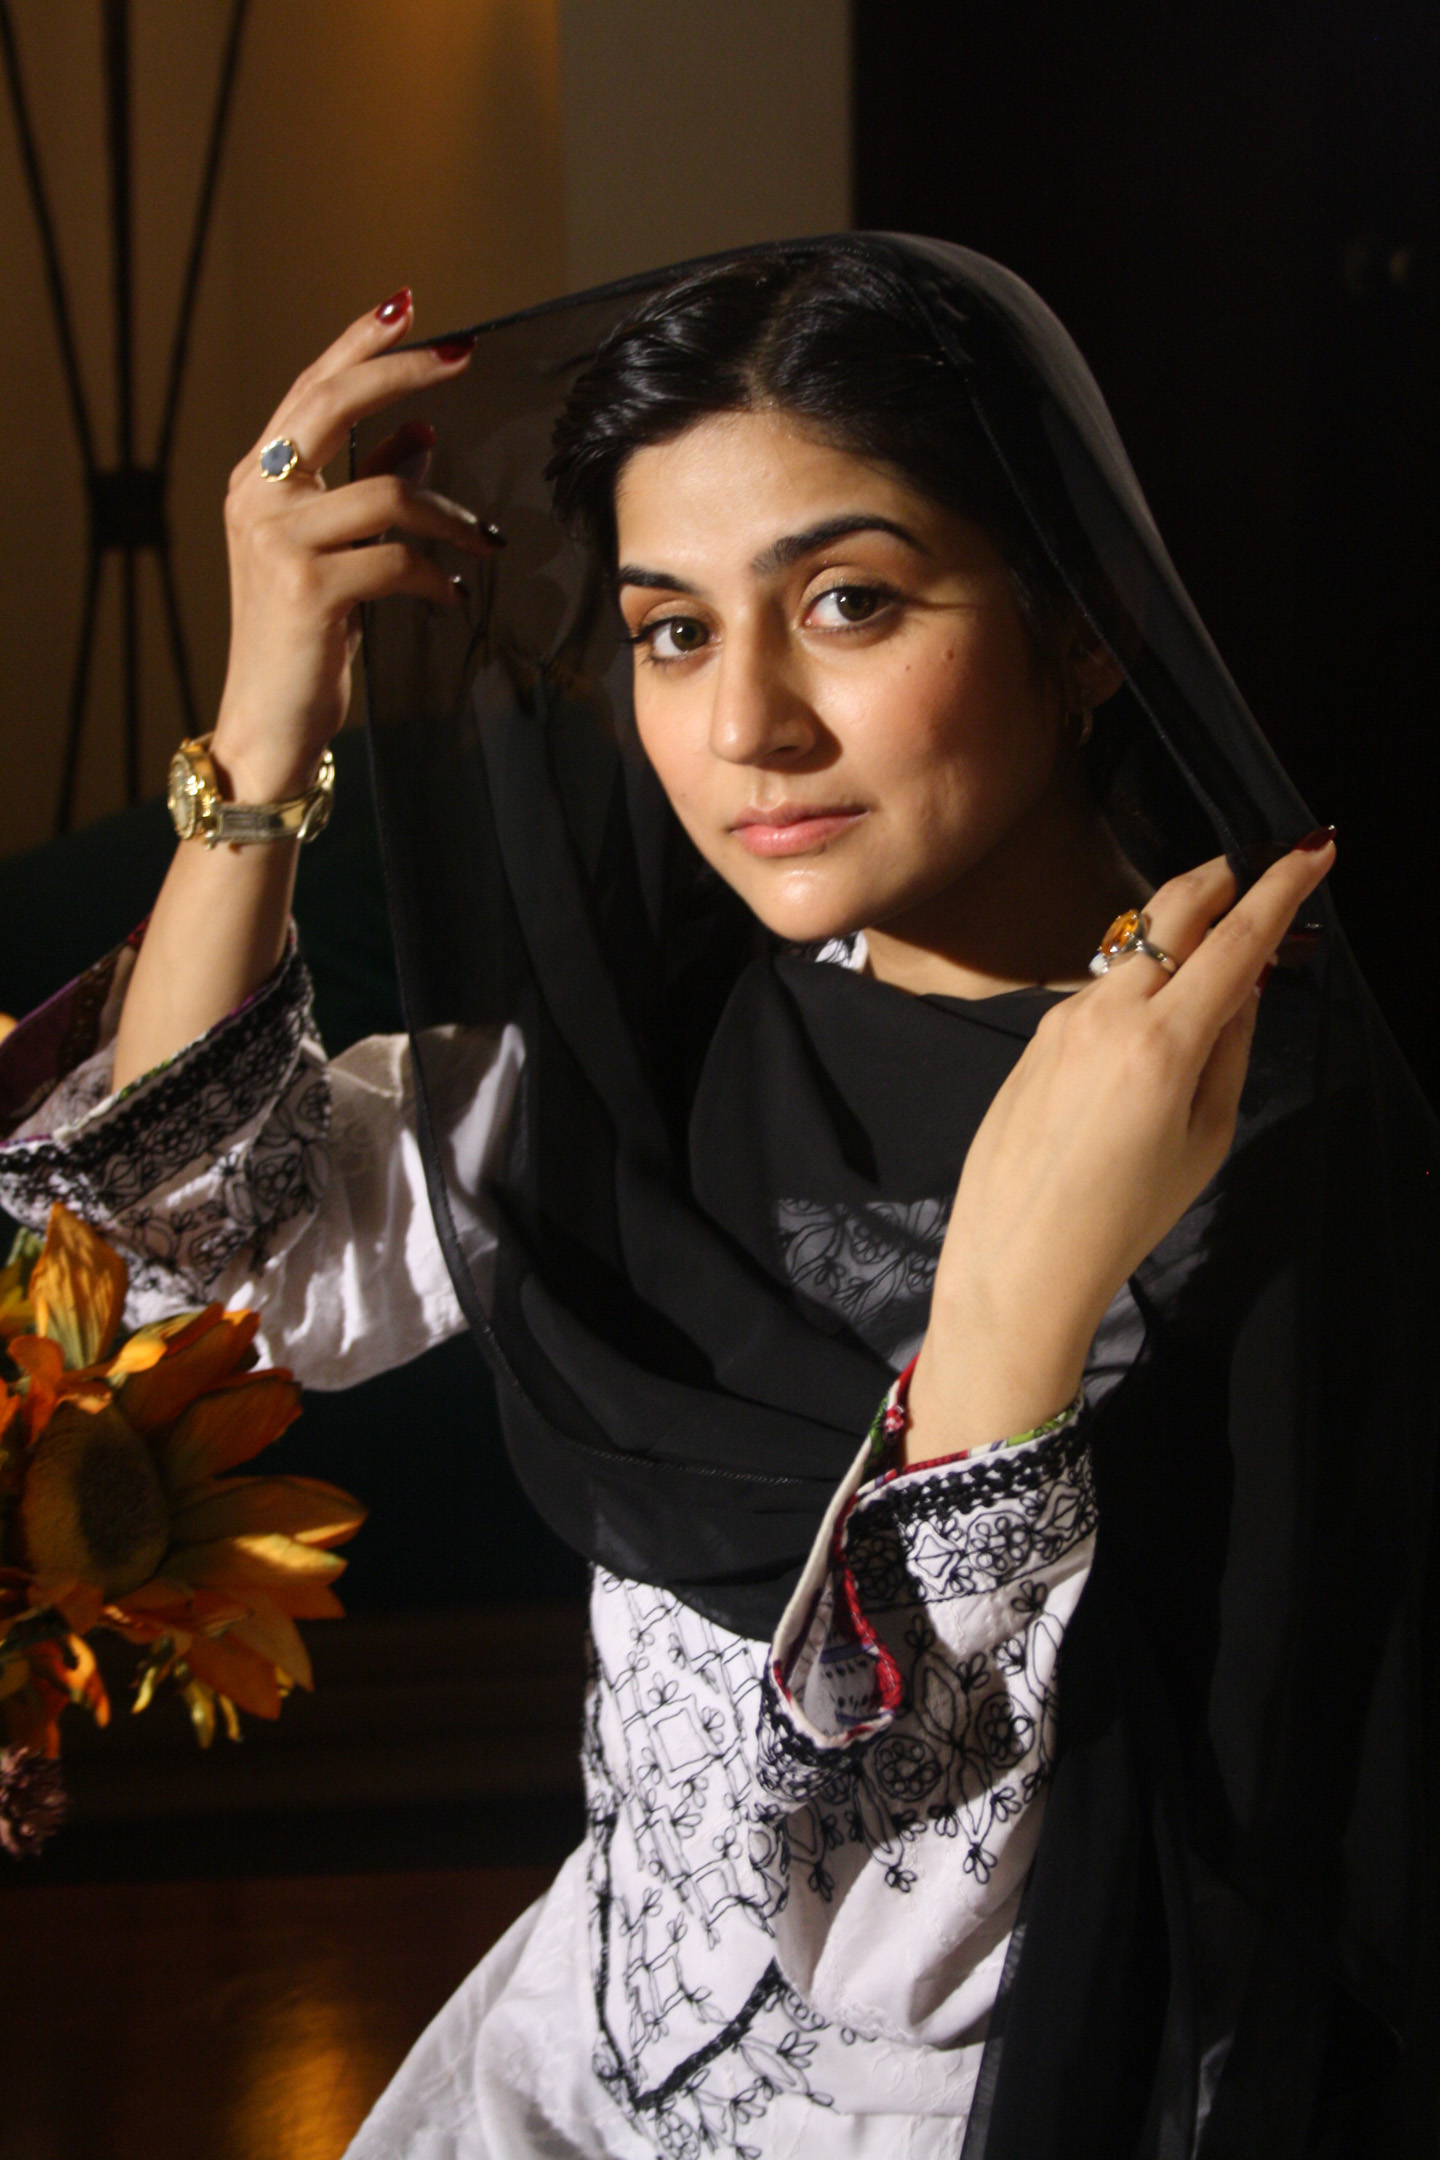 Pakistani drama actresses pictures All Pakistani Female Model s Profiles Portfolios HD